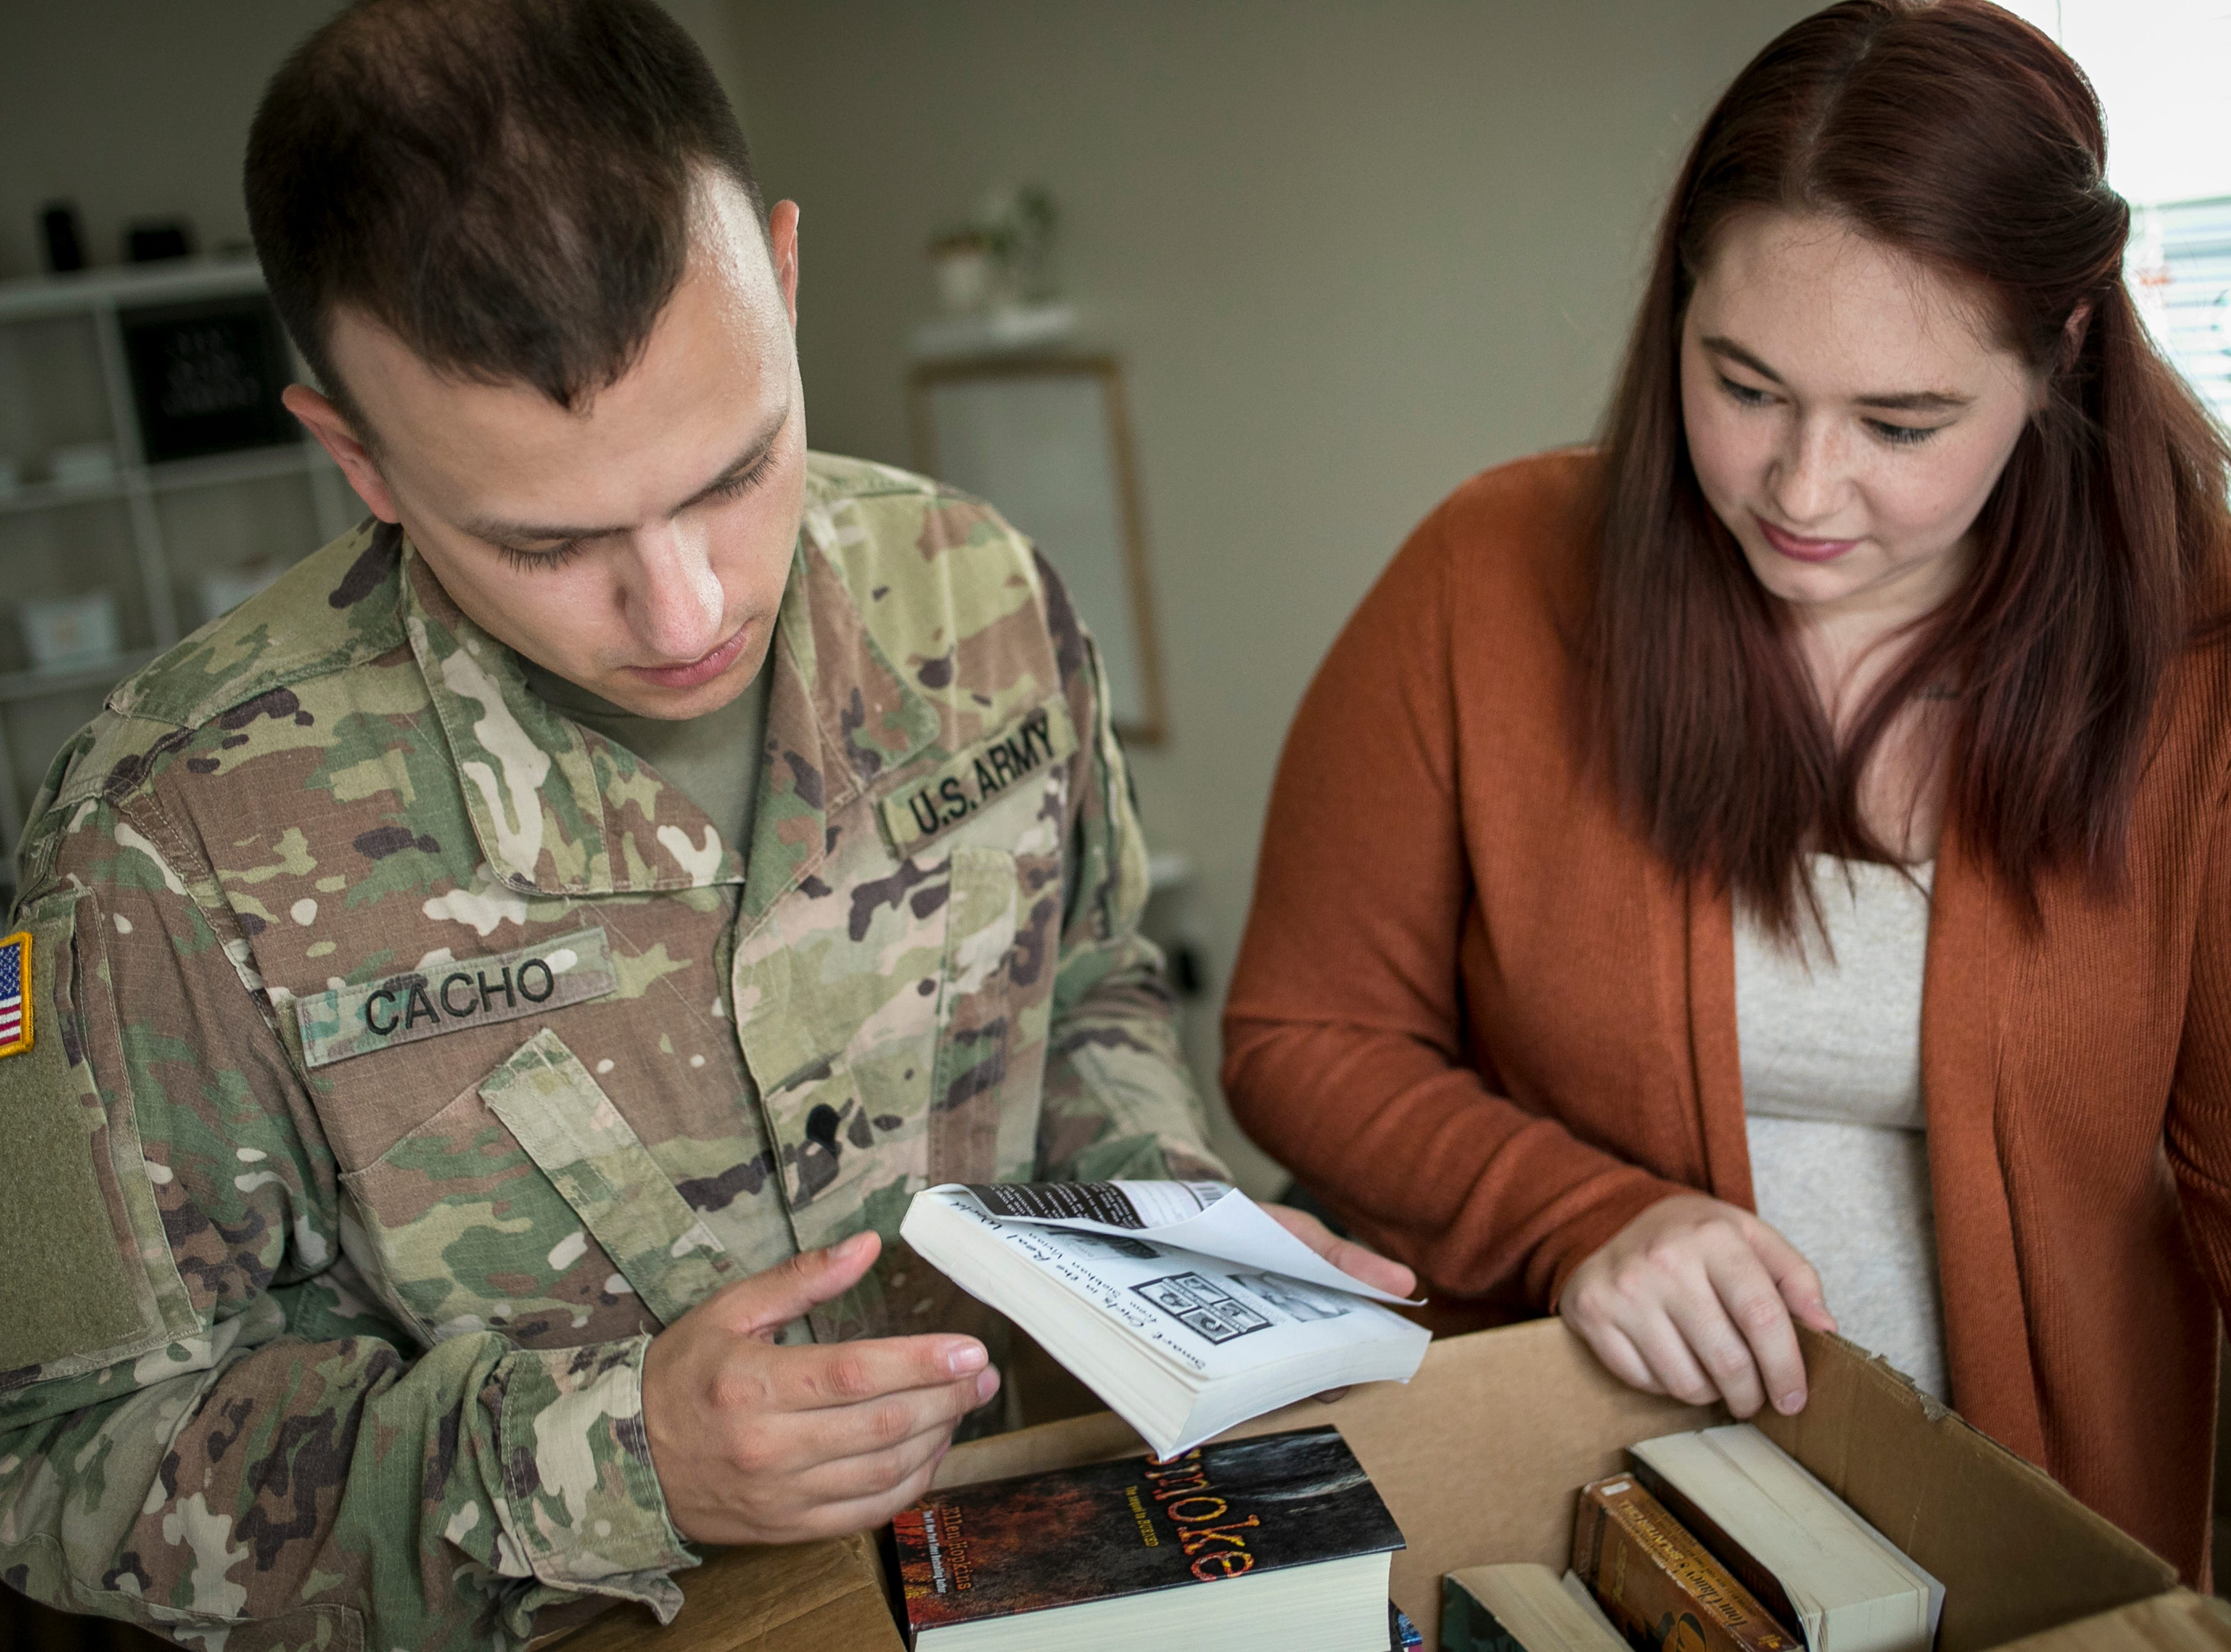 Specialist Christopher Cacho and his wife Andrea look through their damaged books after a bad experience moving from Ft. Campbell to Ft. Belvoir back in July. Many of their pieces of furniture were scratched and damaged. Books had water damage, including a family Bible. But the worst may have been the wedding rings that disappeared. September 4, 2018.